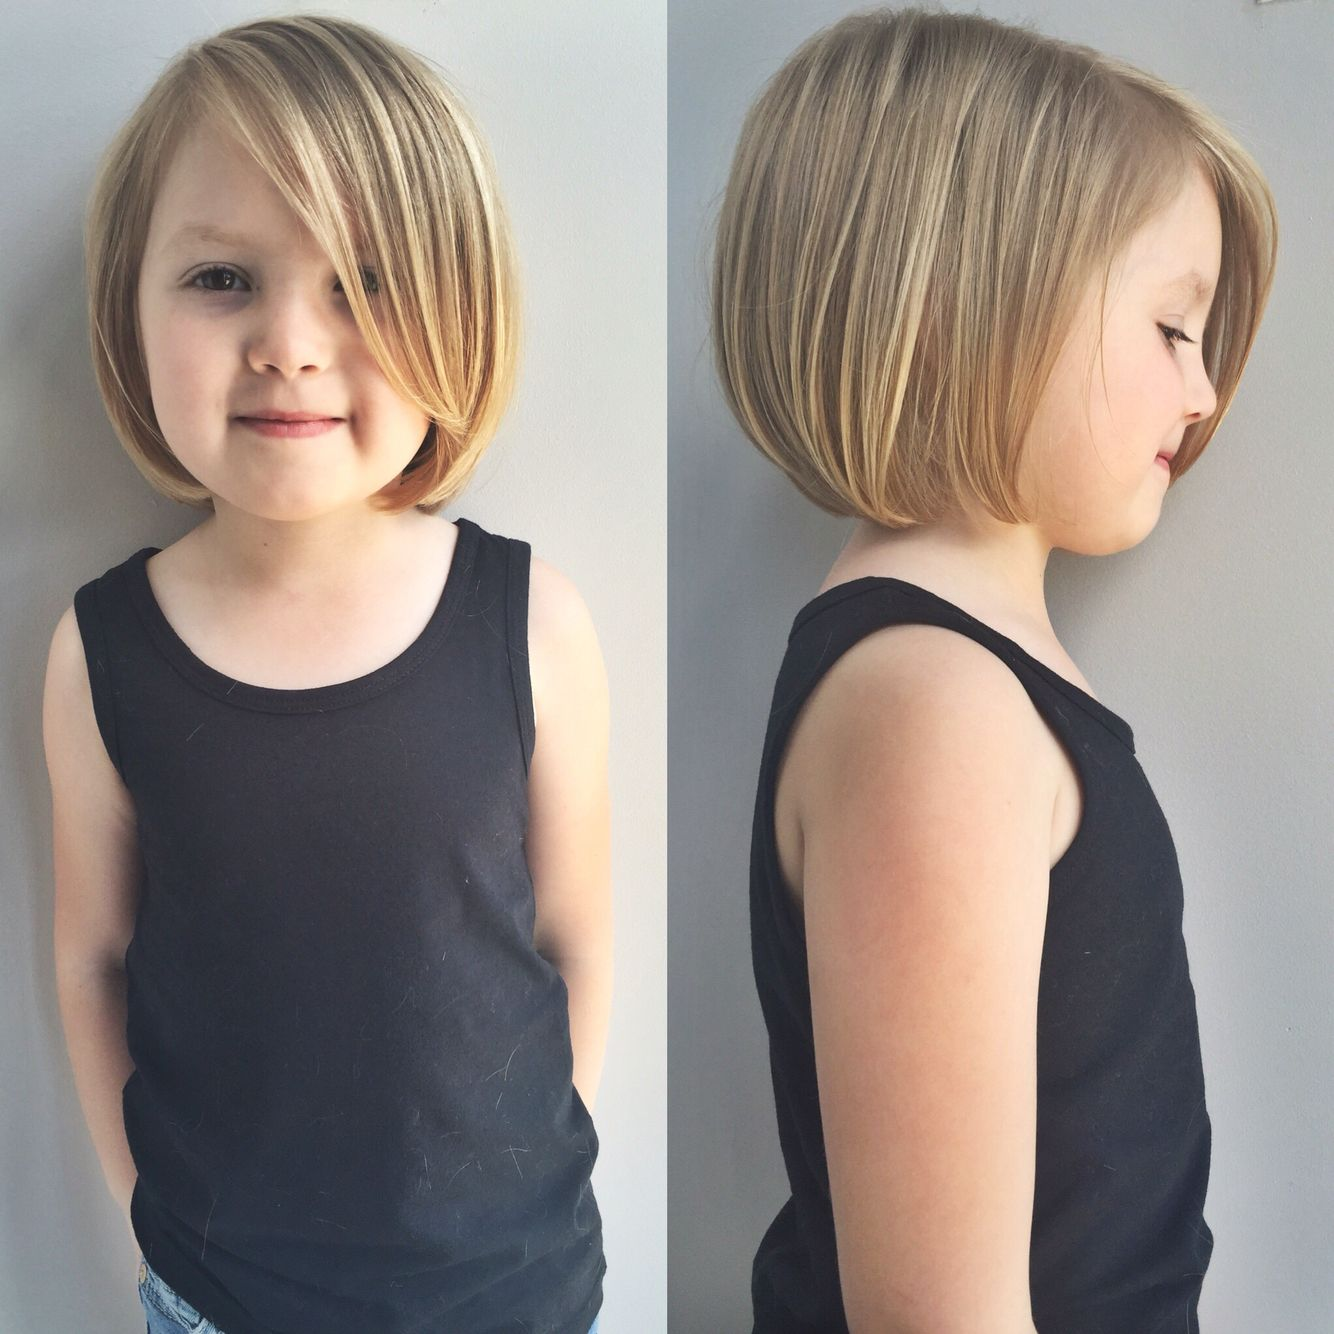 Kids Hairstyles Little Girls Haircut Kids Haircut Haircuts For Kids Haircuts For Little Girls Little Girl Haircuts Kids Girl Haircuts Toddler Girl Haircut